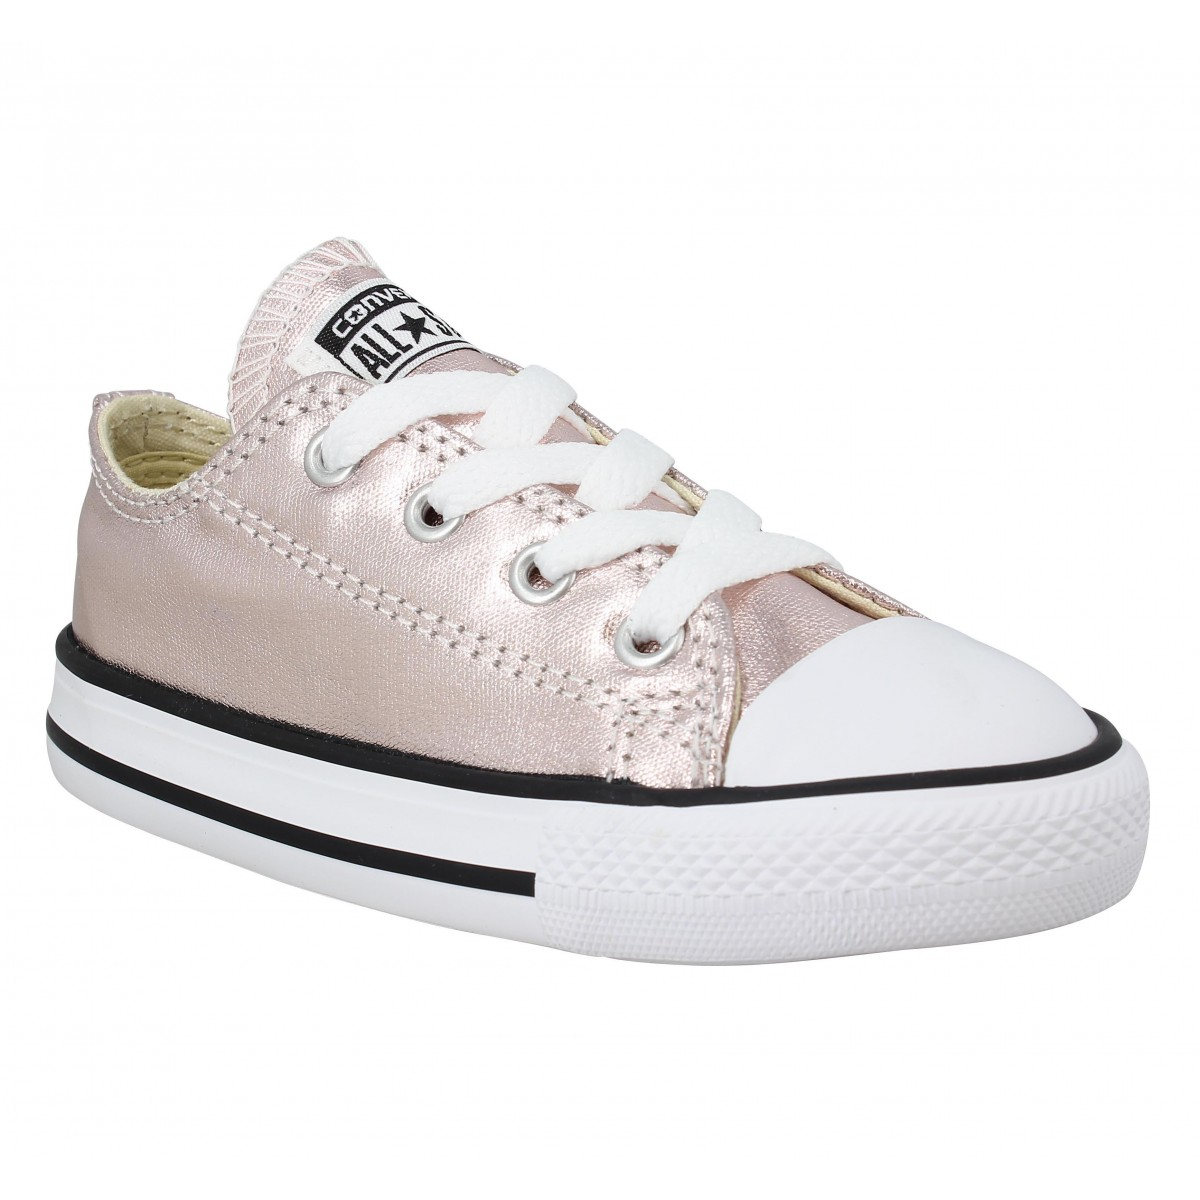 Baskets CONVERSE Chuck Taylor All Star toile Enfant Rose Quartz